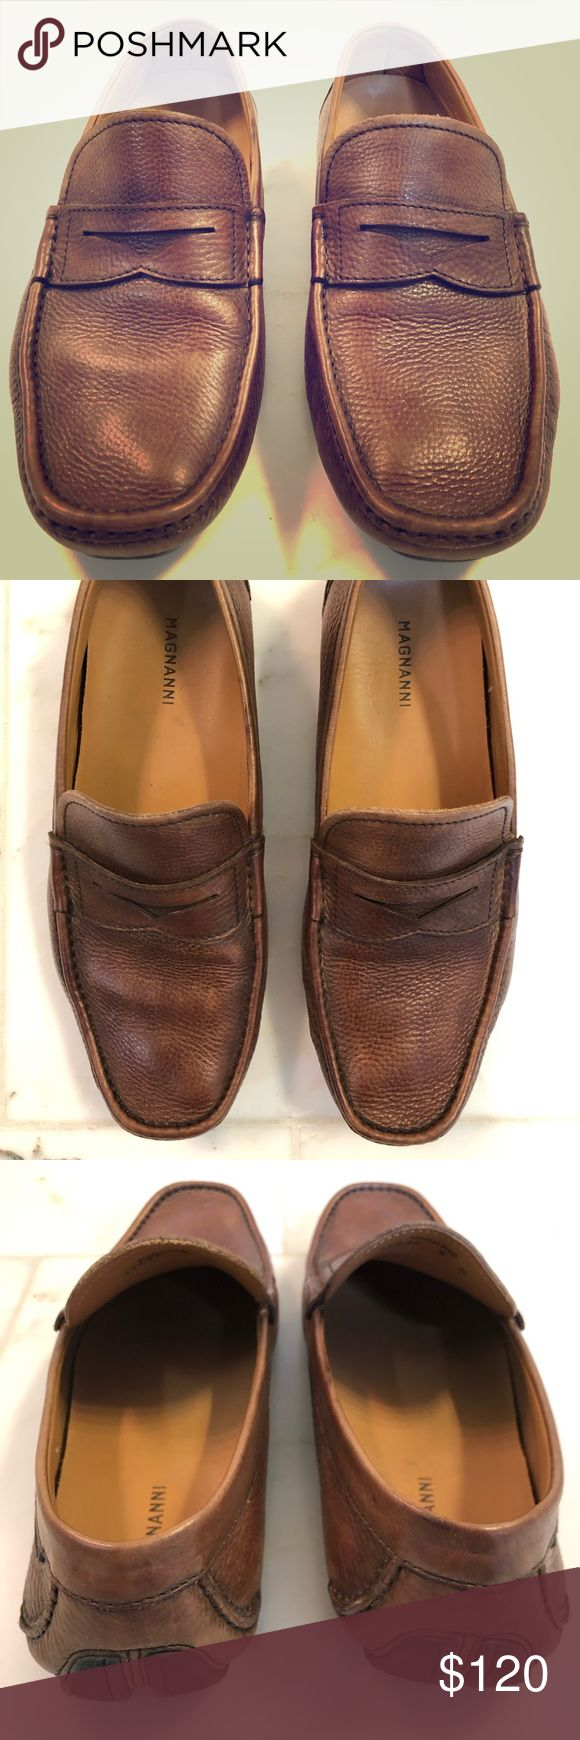 Men's Magnanni Brown Leather Driving Shoes Very soft and comfortable Magnanni ...